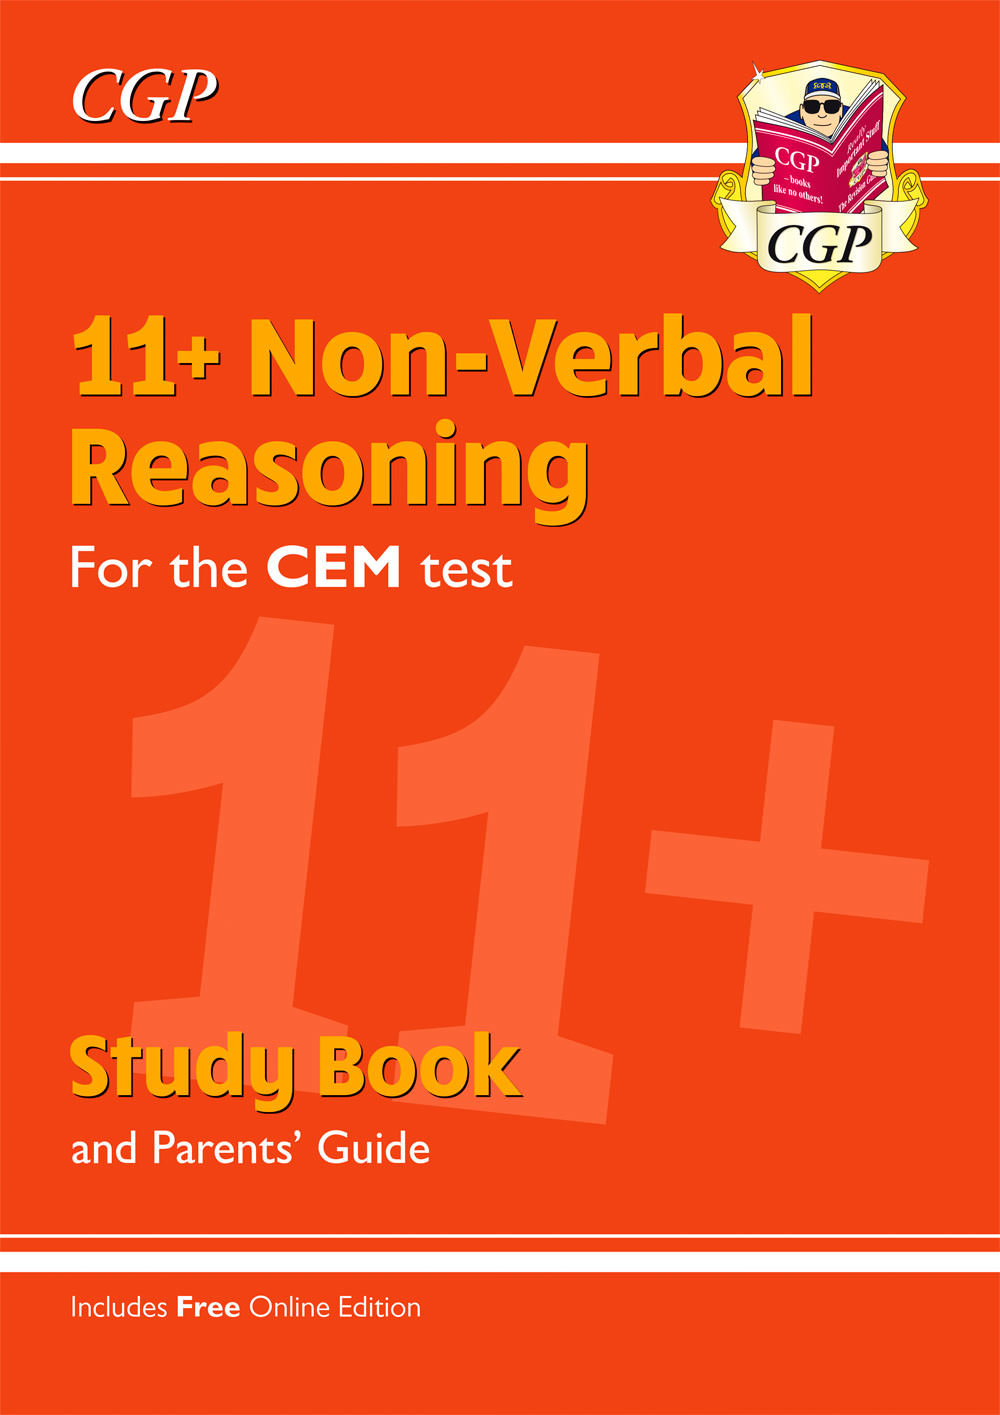 NHRDE2 - 11+ CEM Non-Verbal Reasoning Study Book (with Parents' Guide & Online Edition)